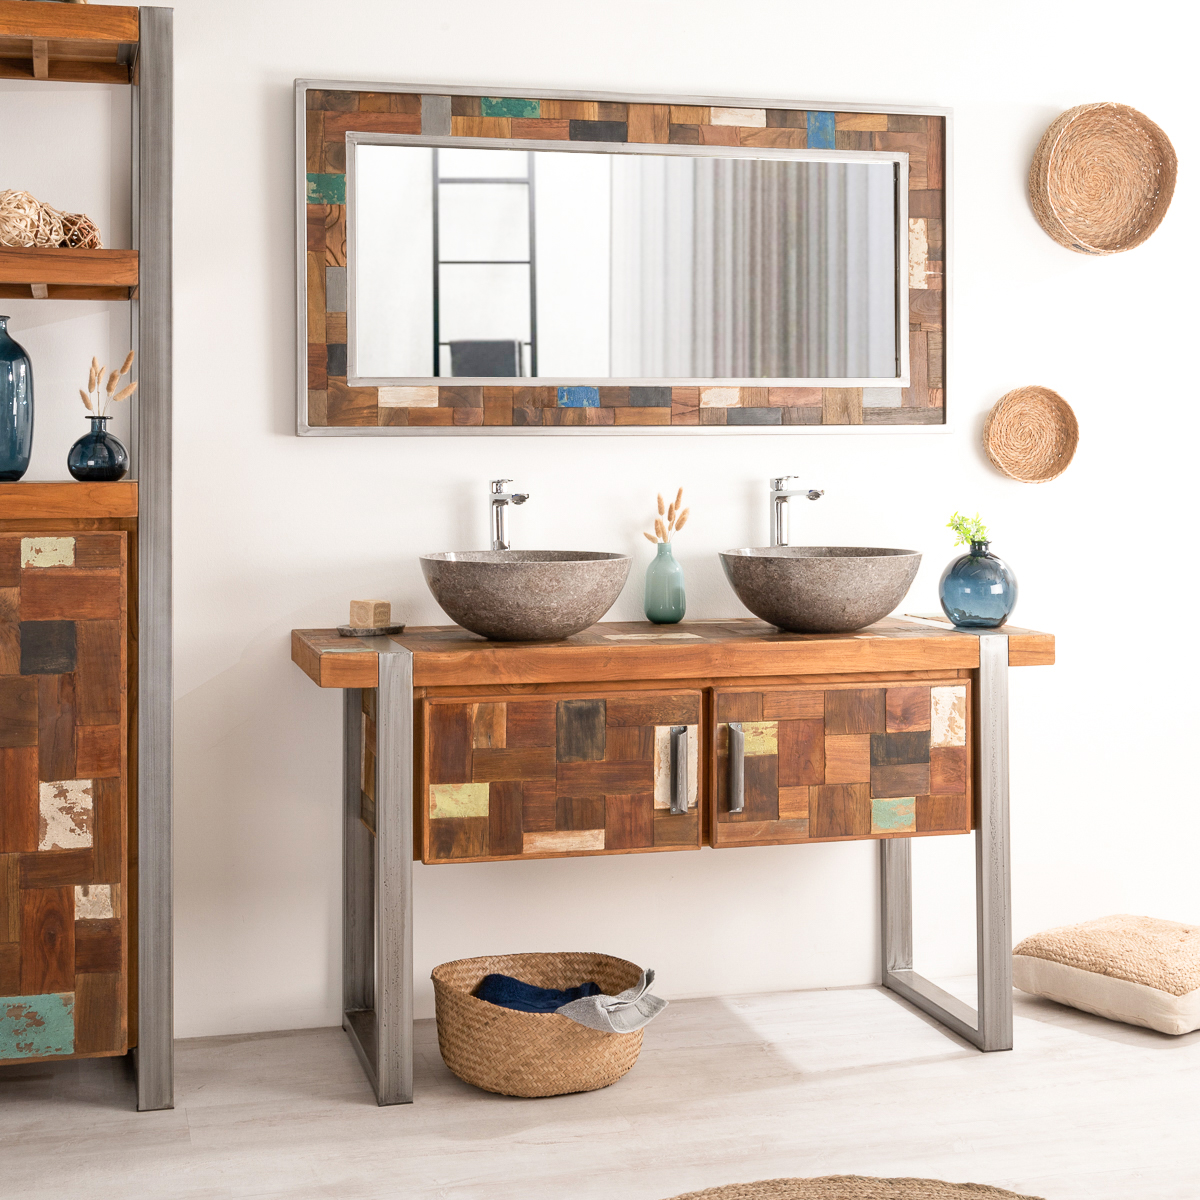 miroir de d coration en bois teck massif et m tal factory rectangulaire naturel l 145 cm. Black Bedroom Furniture Sets. Home Design Ideas